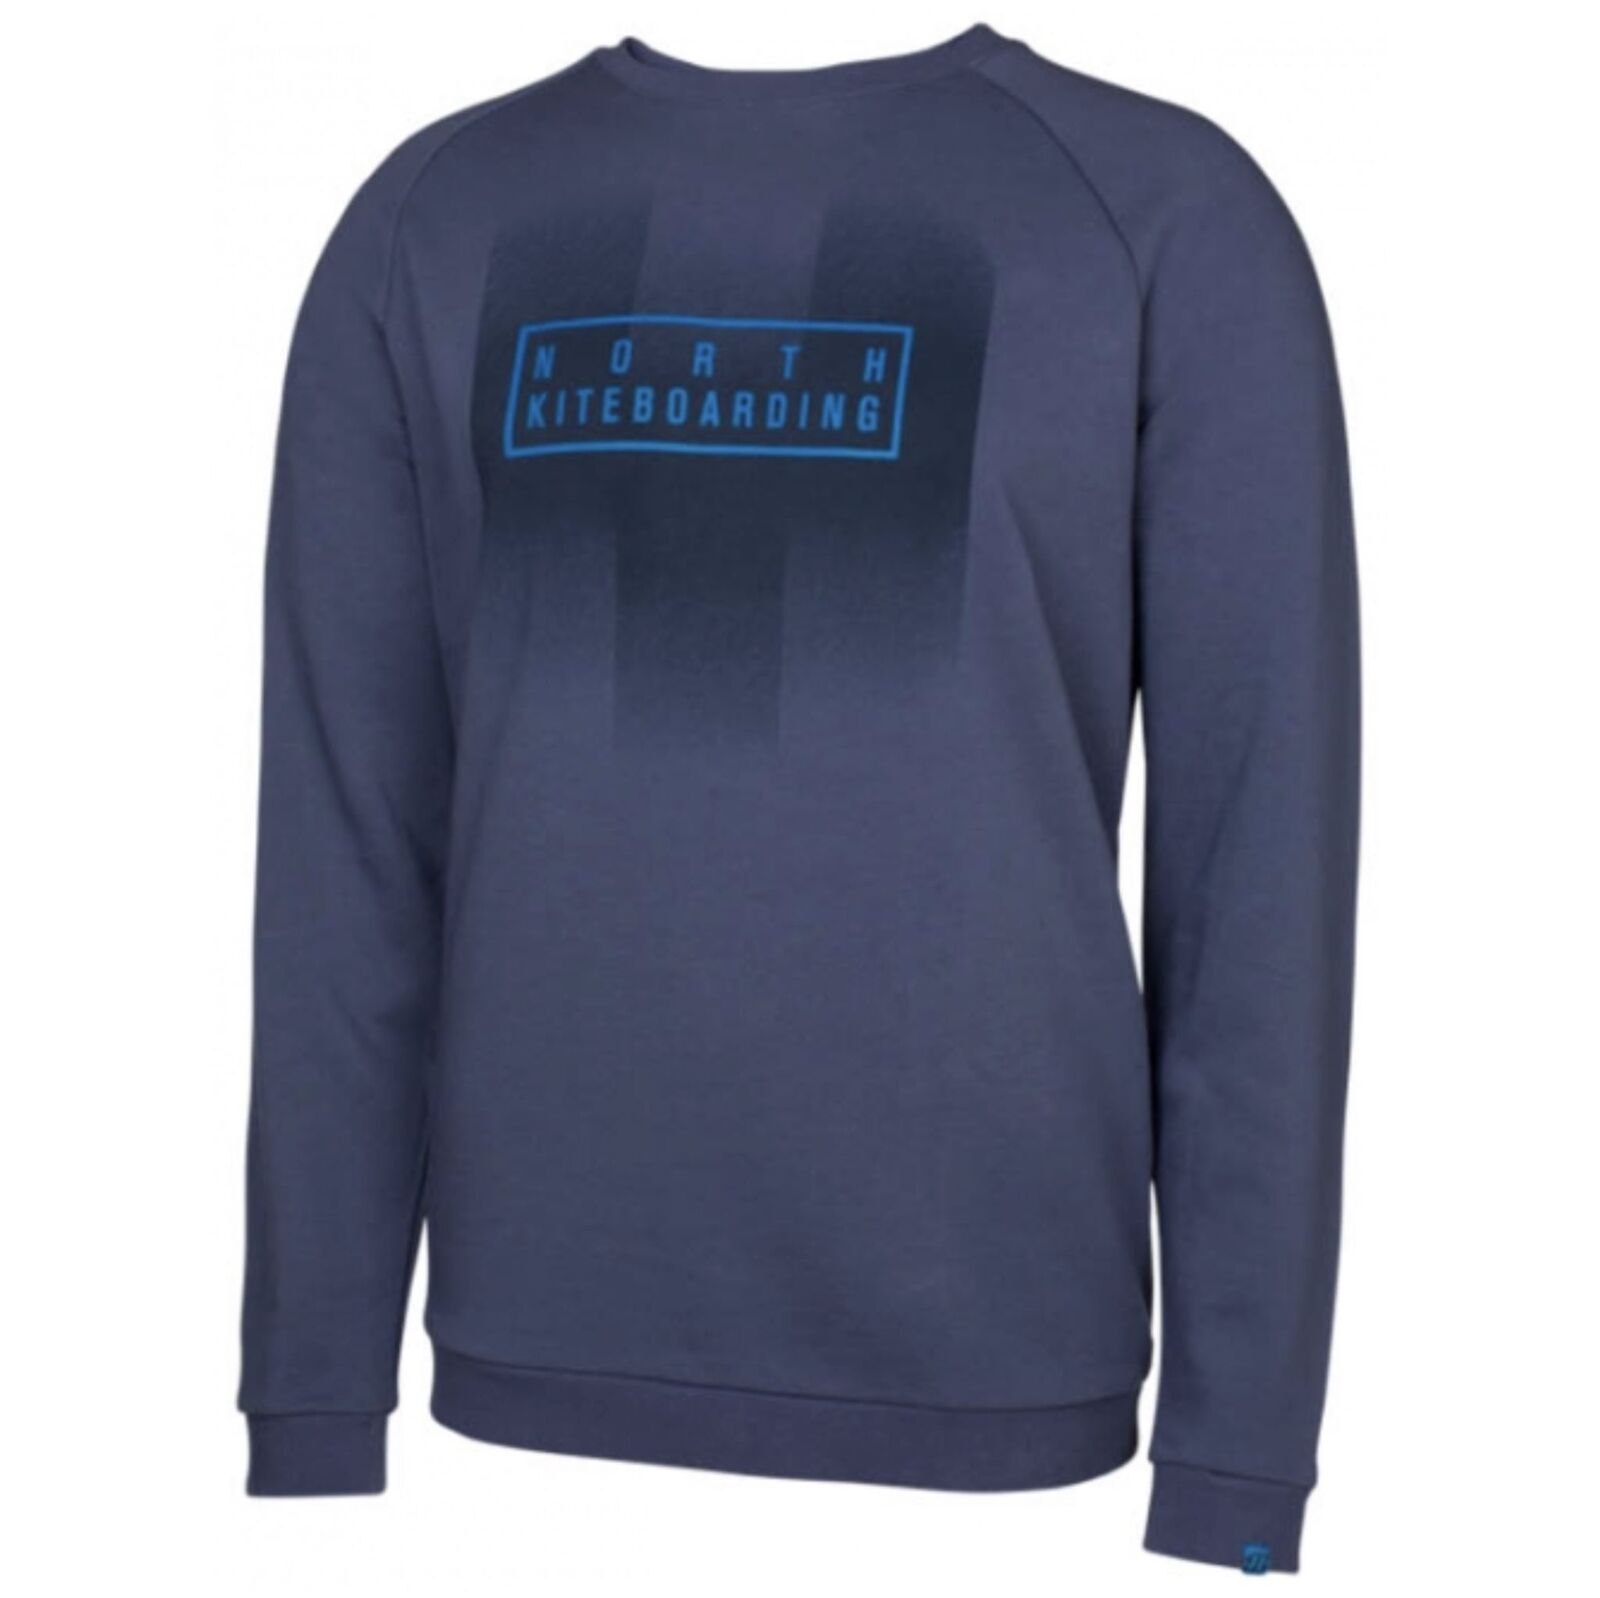 North Kiteboarding Sweater Amplify Dark Night